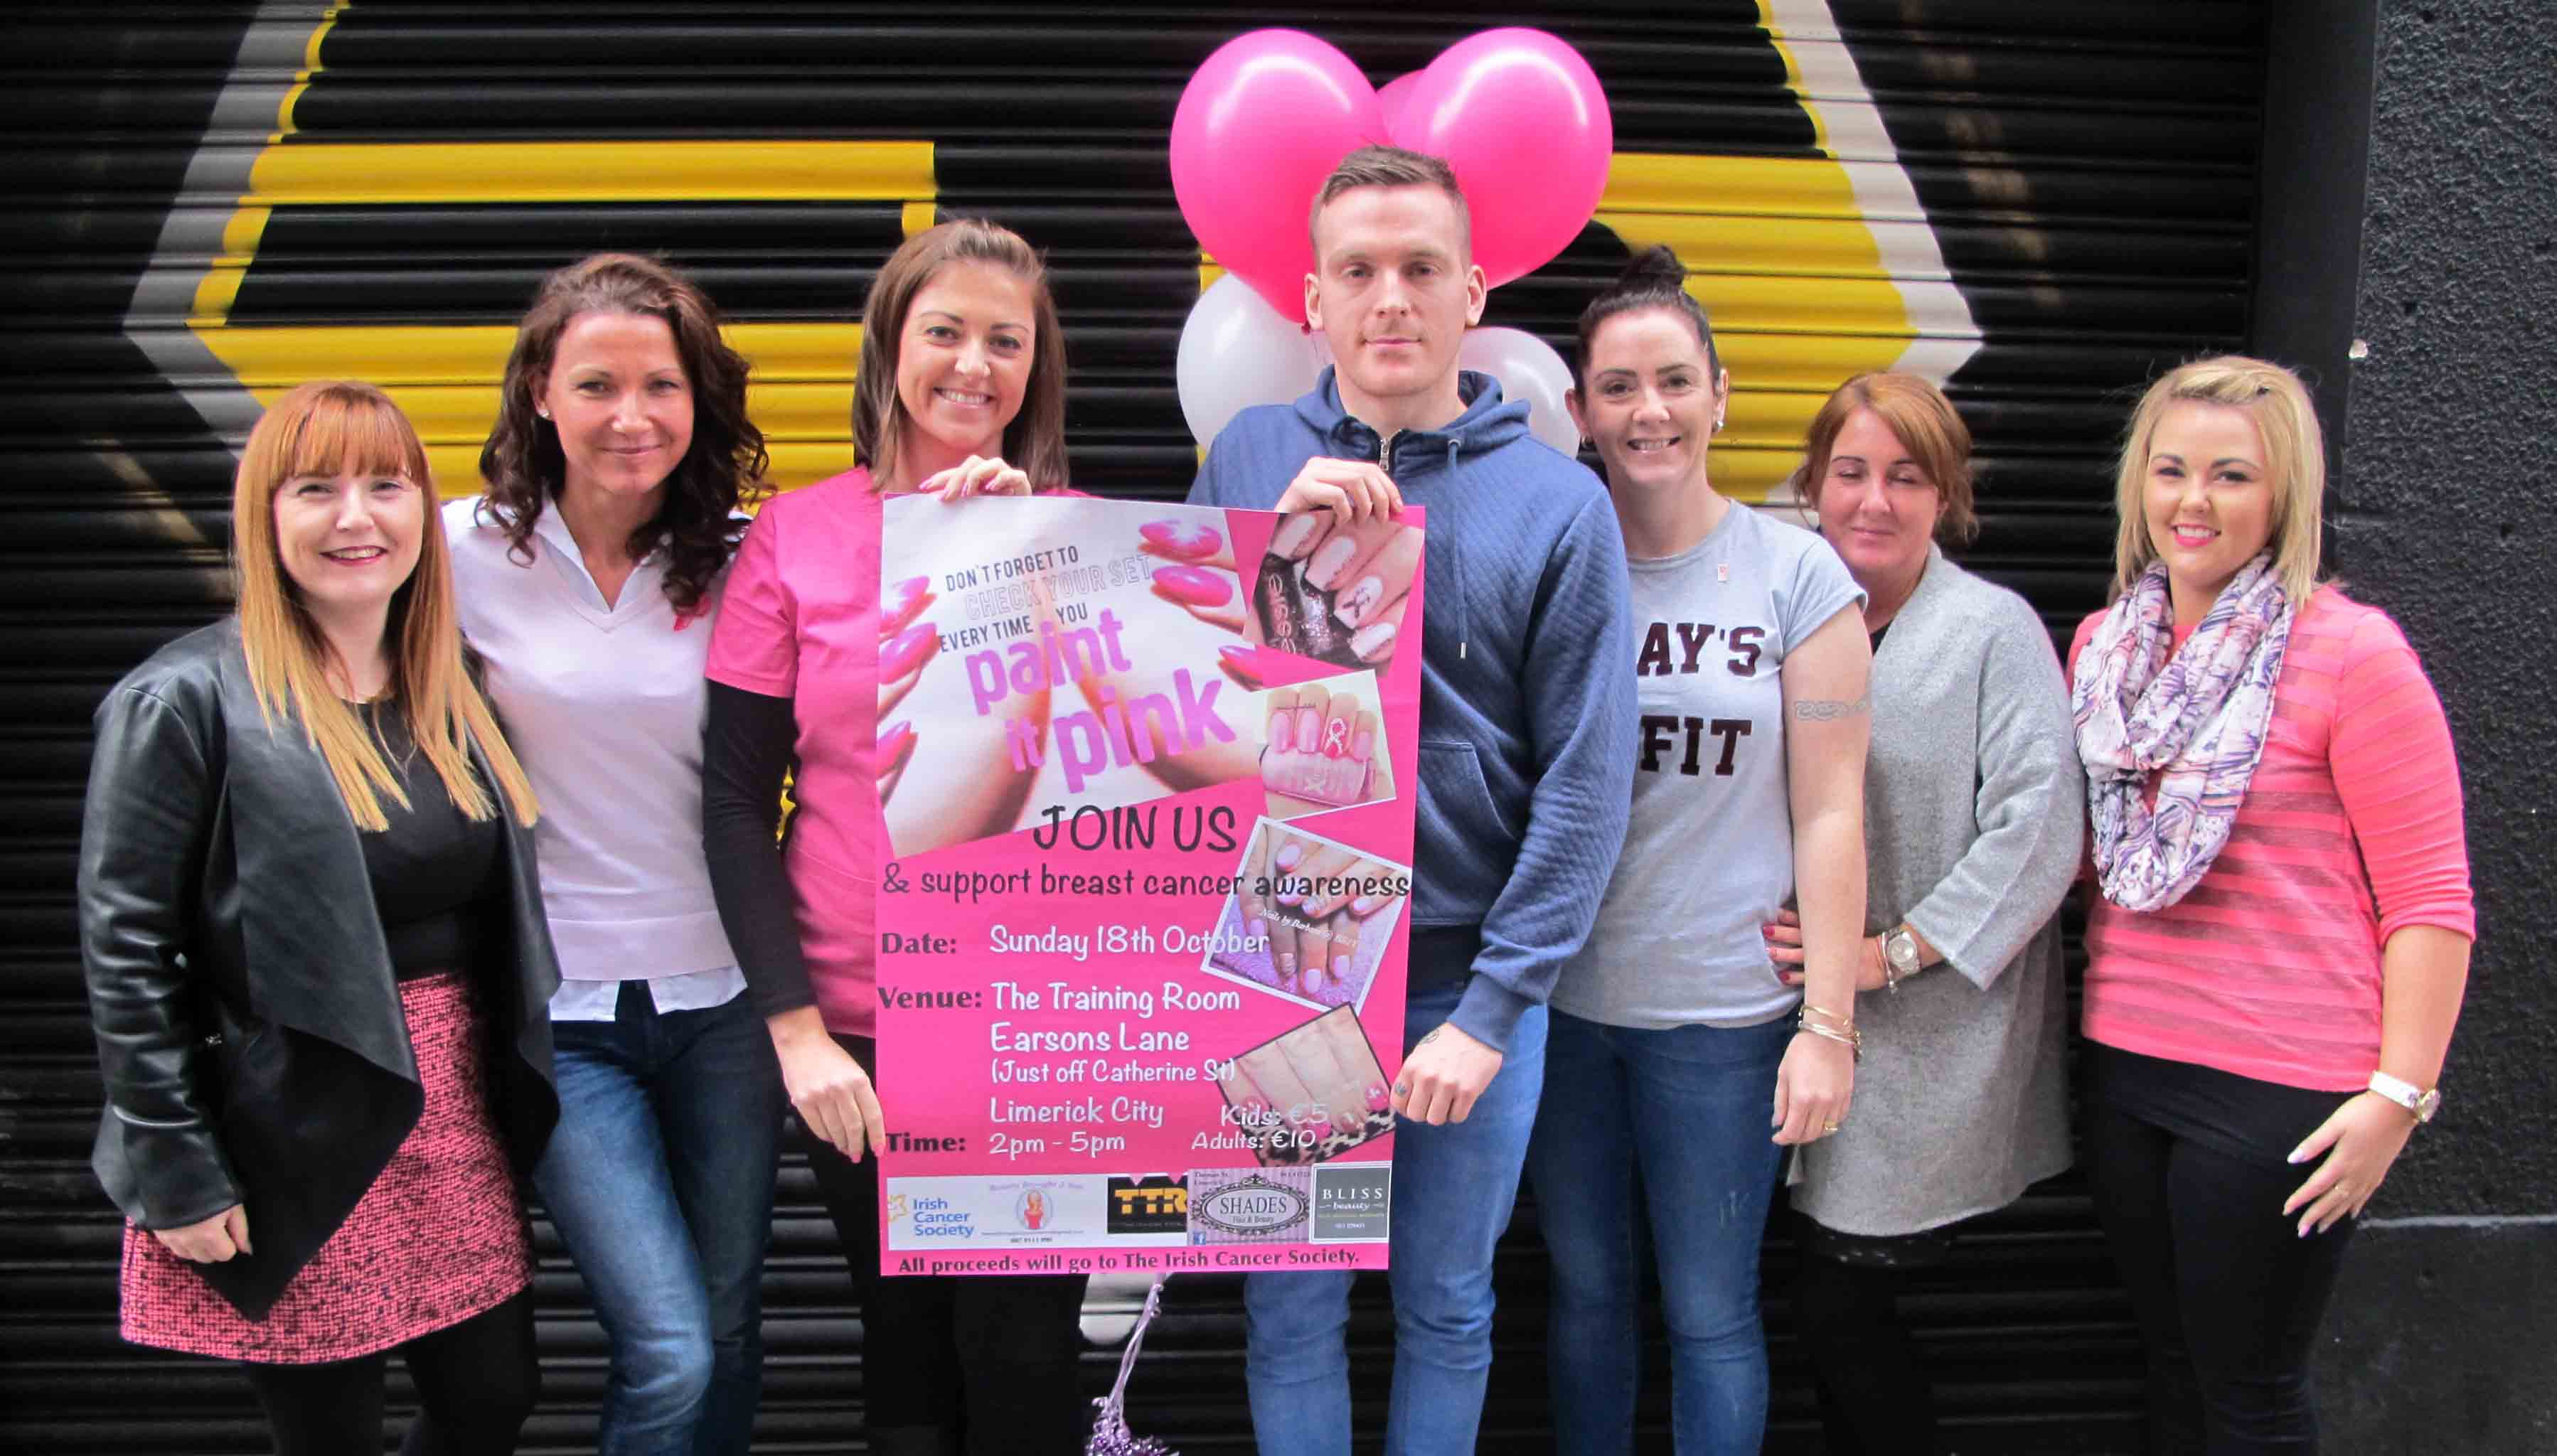 Paint it Pink fundraising event to raise funds for breast cancer awareness